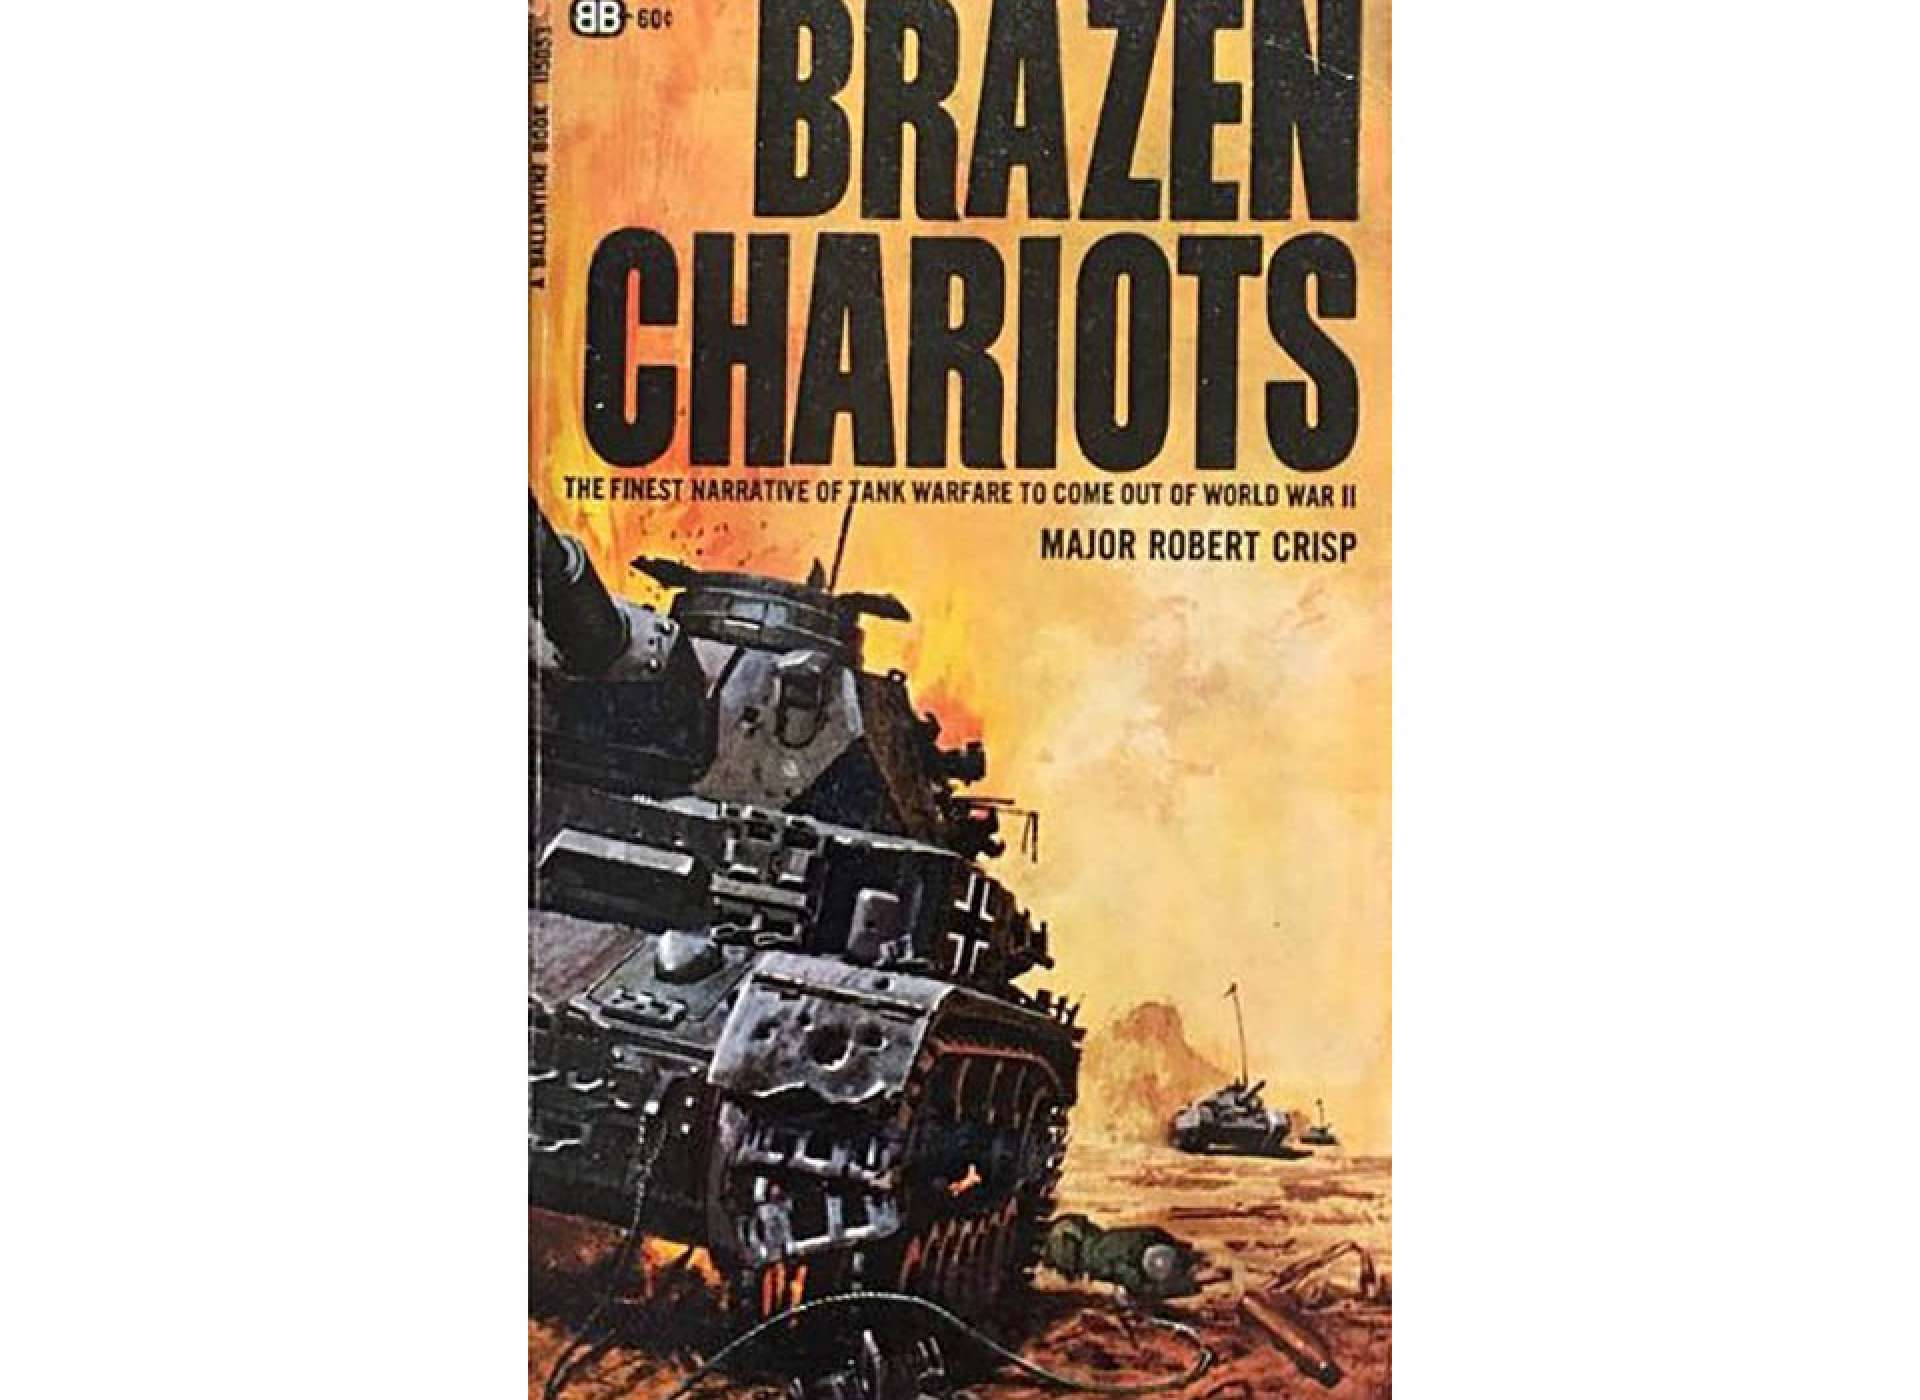 Brazen Chariots. Courtesy of Amazon.com